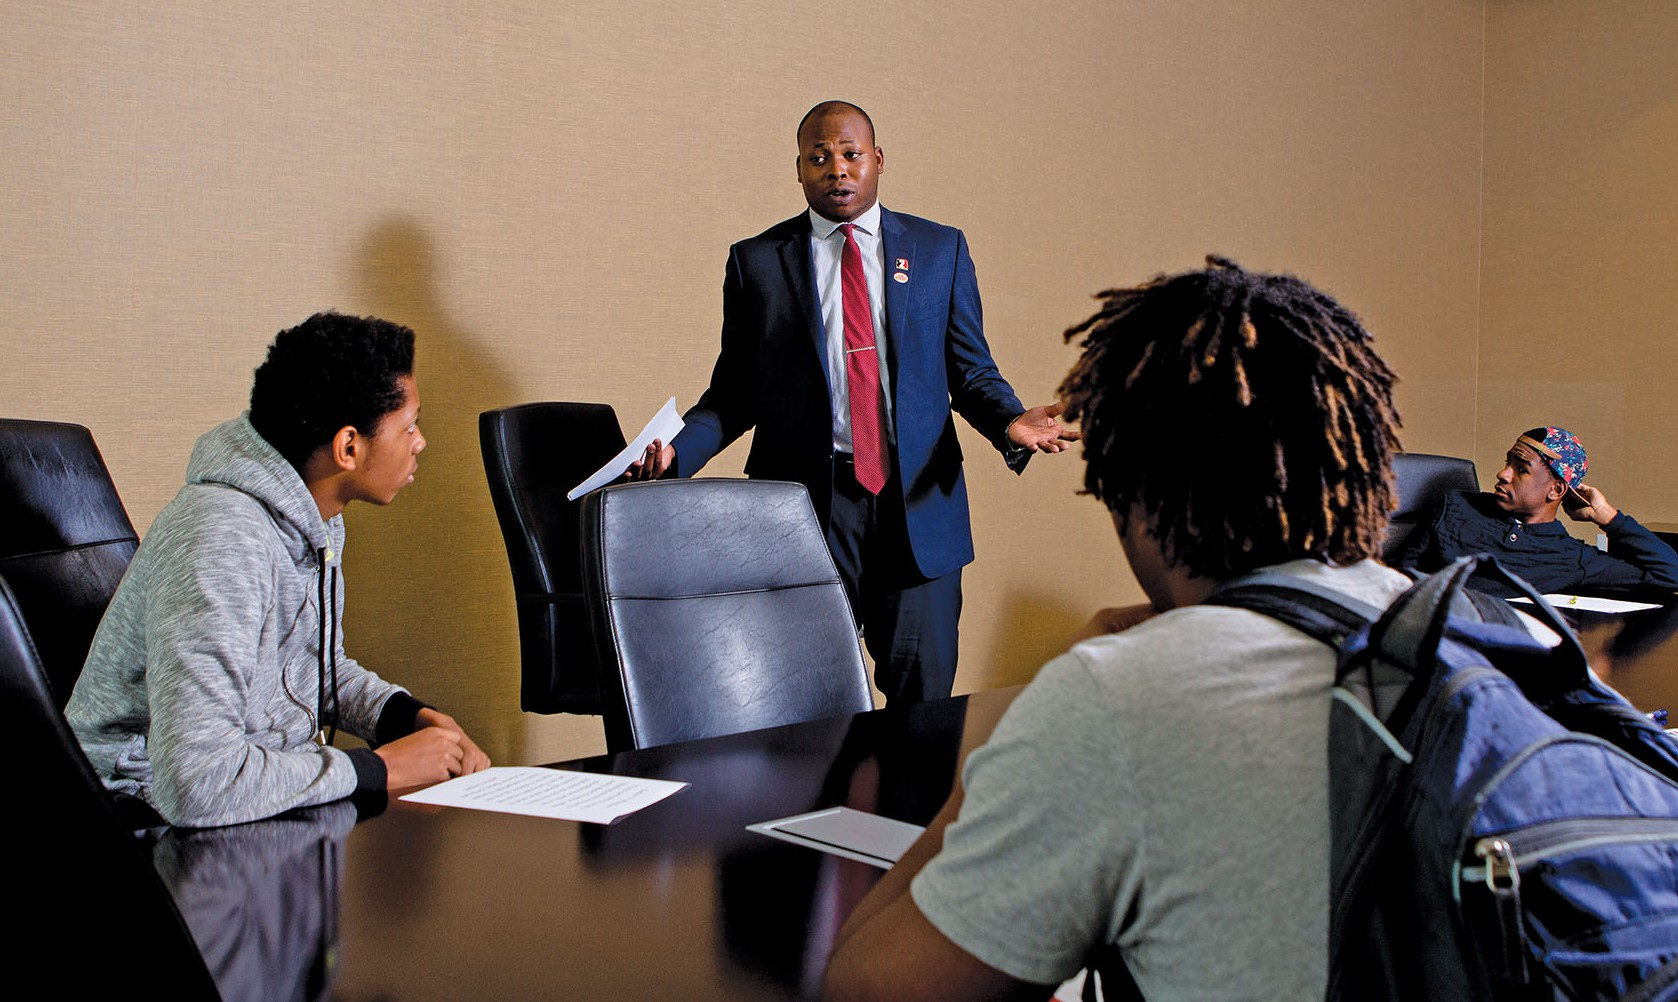 Snelling, once a leader on the basketball court, now leads in campus conference rooms. He regularly directs meetings of B2B and of a campus program called GHAME (Georgia Highlands African-American and Minority Male Excellence).